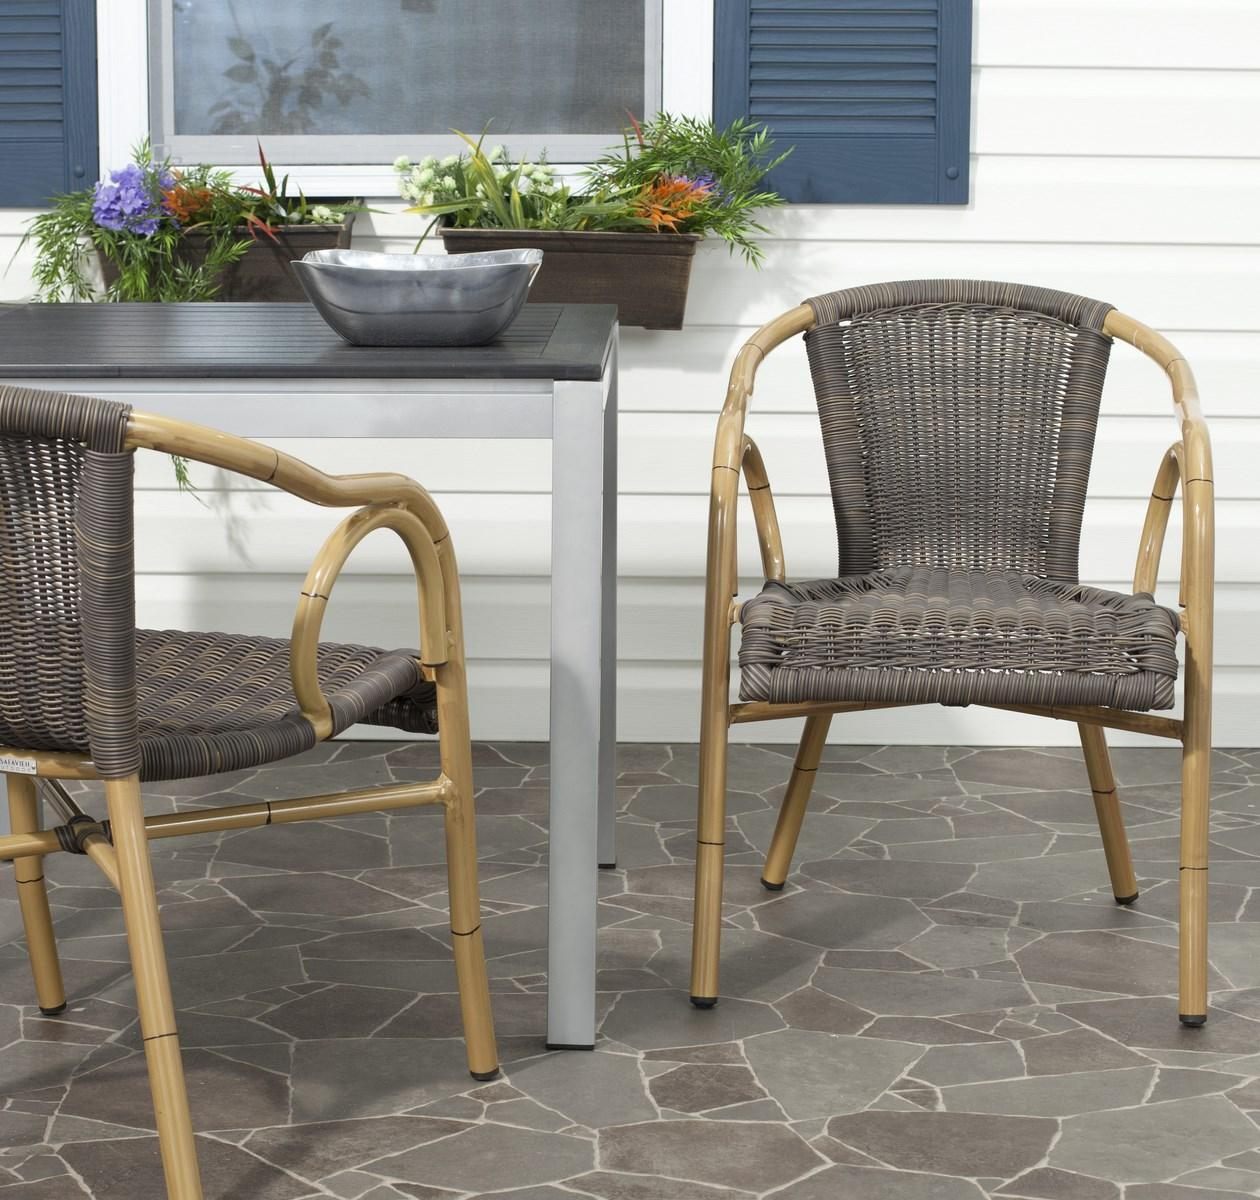 PAT4000A-SET2 Outdoor Dining Chairs